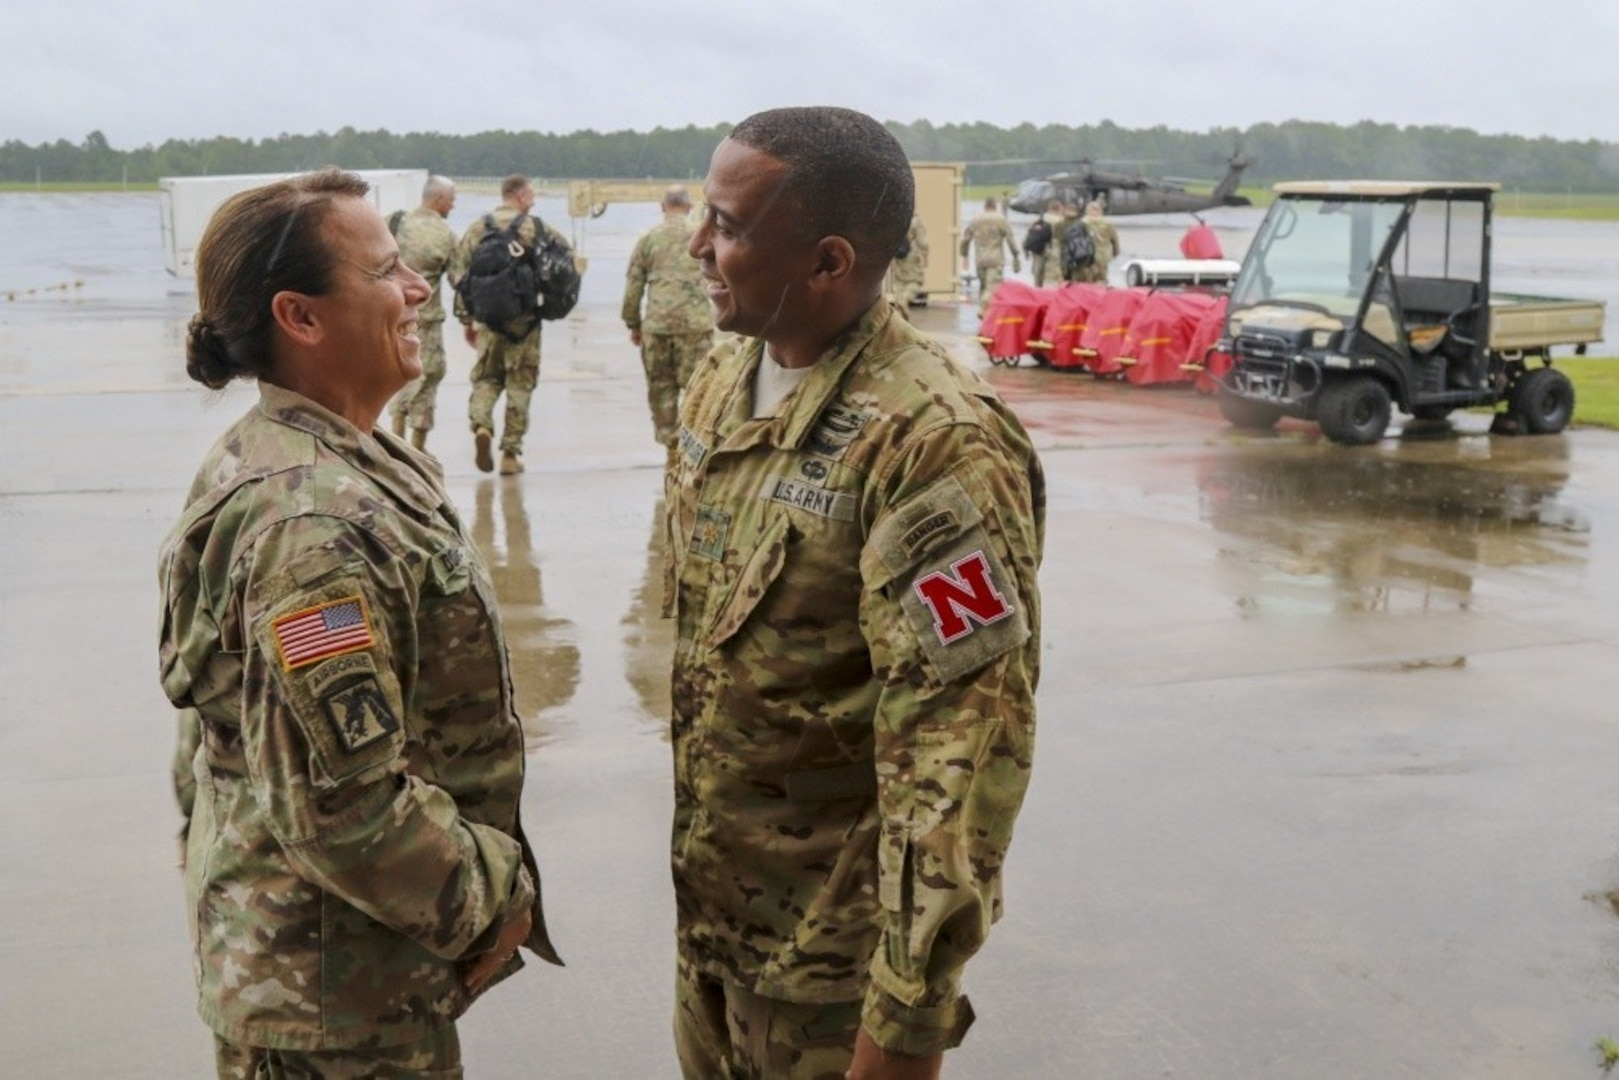 Chief Warrant Officer 5 Teresa Domeier, command chief warrant officer of the Army National Guard, speaks with Maj. Thomas Traylor of the Nebraska National Guard during the Guard's hurricane recovery efforts in North Carolina Sept. 16, 2018. Domeier is a native of Ceresco, Neb., and is the first female command chief warrant officer in the Guard's history.